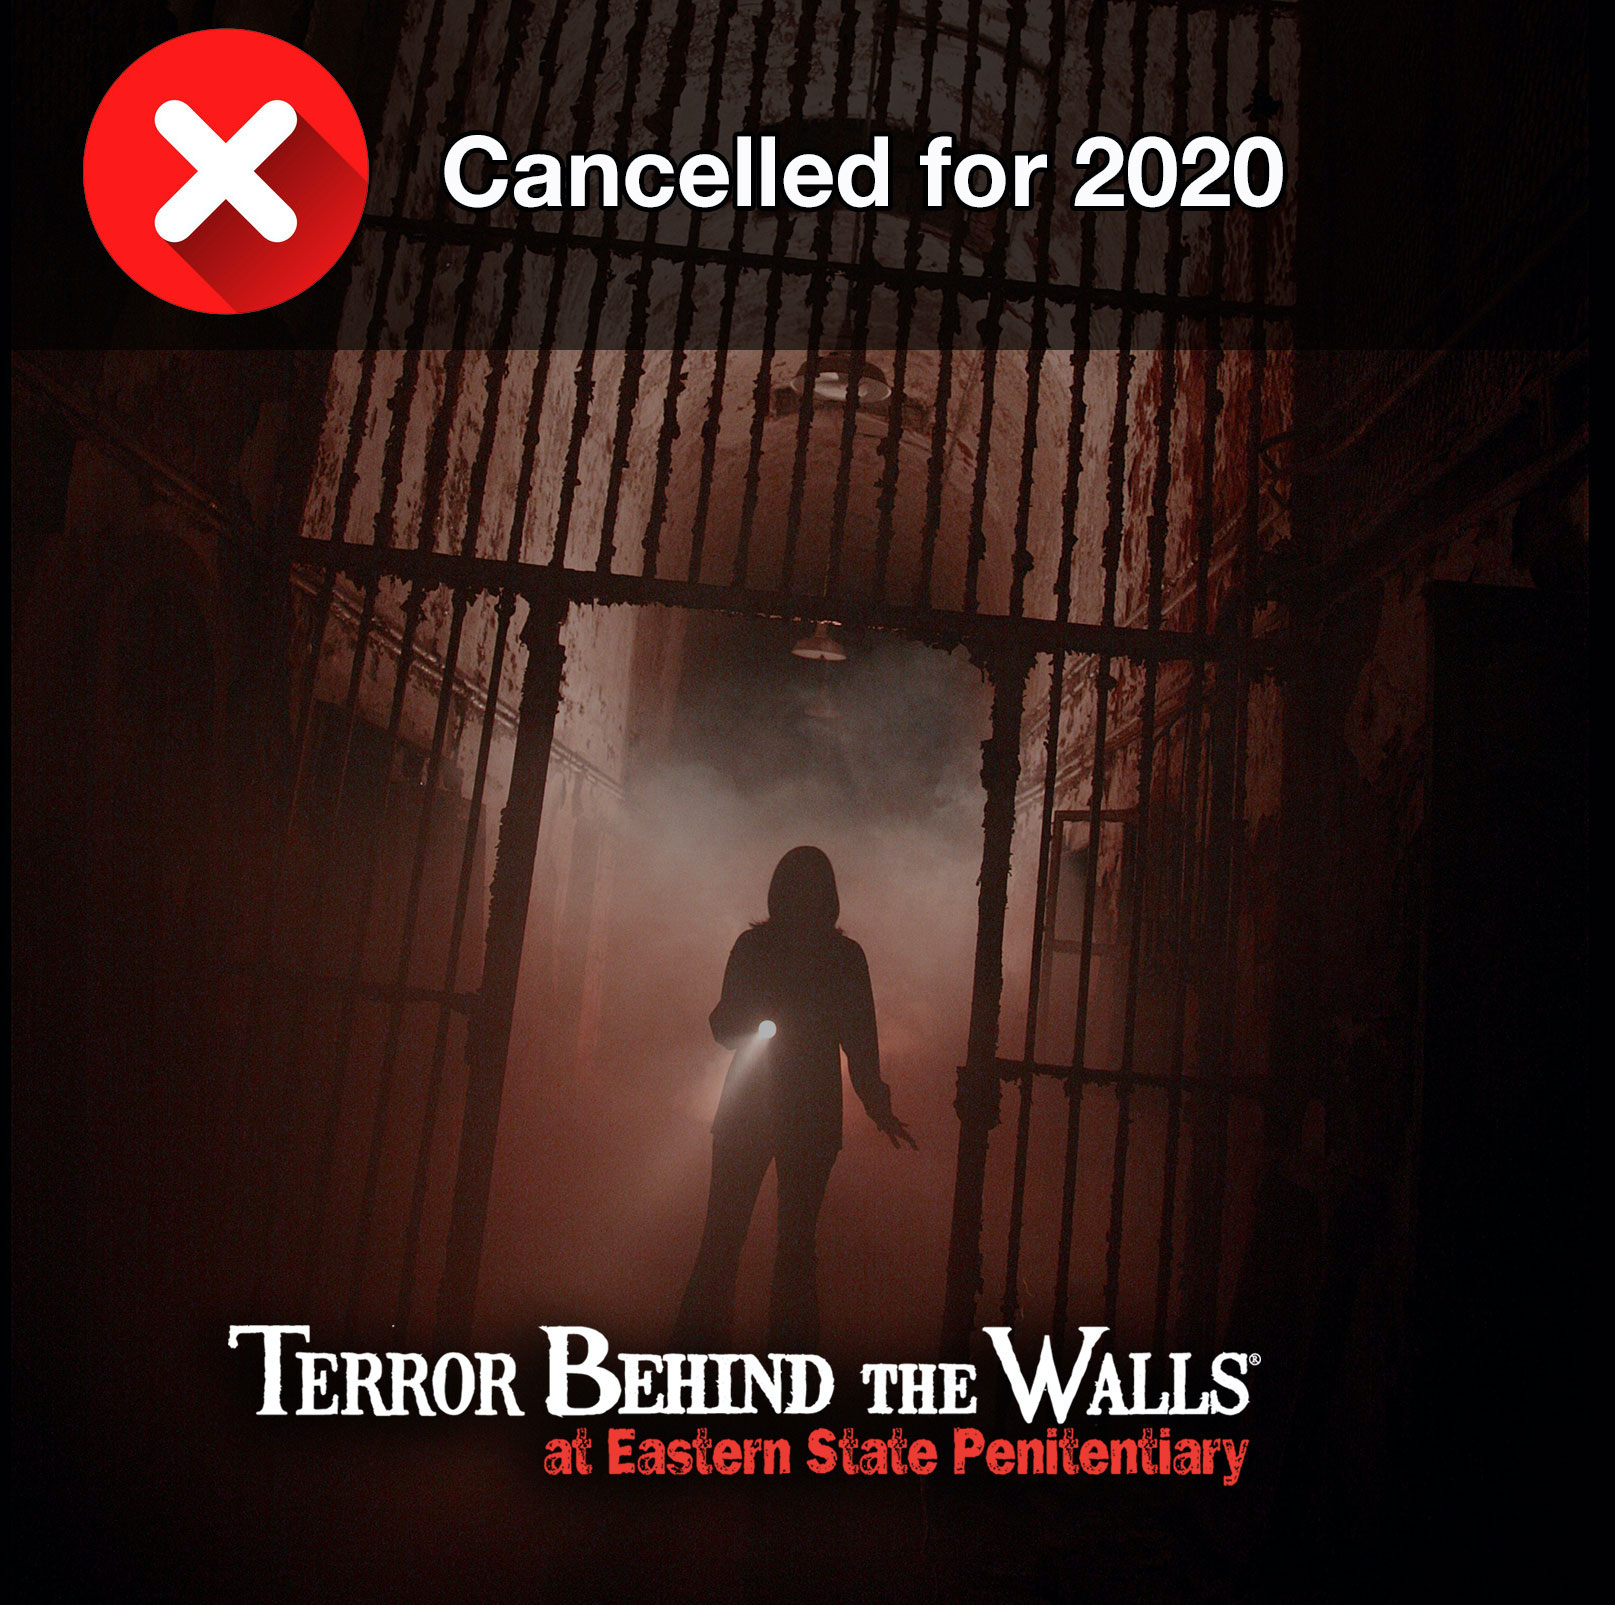 Terror Behind the Walls is Closed for 2020